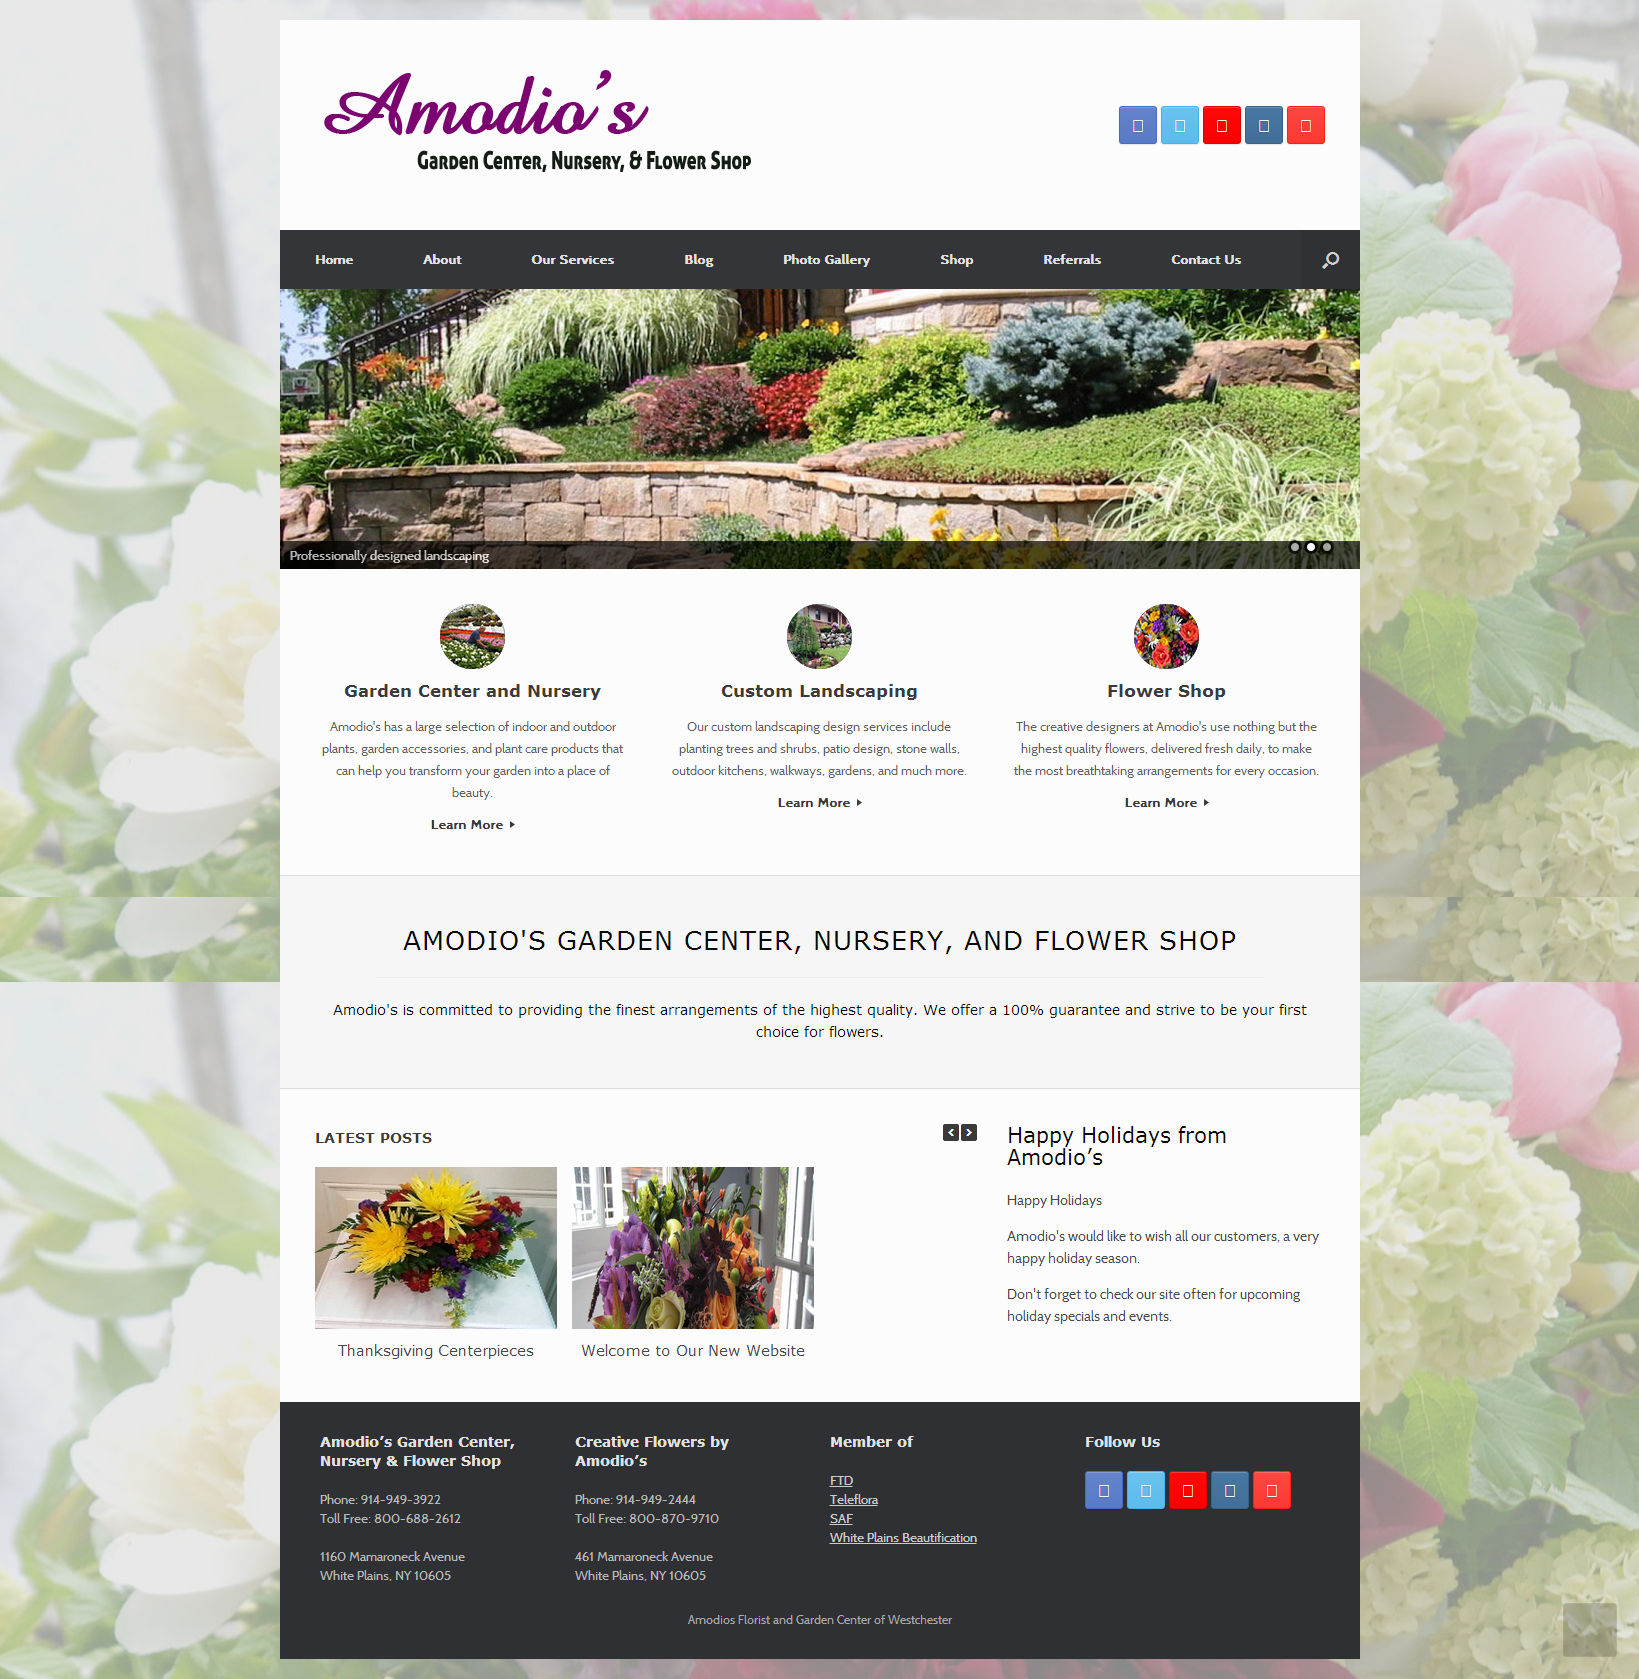 Amodios garden center and flower shop is a full service garden amodios garden center and flower shop is a full service garden center in white plains ny offering fresh flowers gardening supplies mightylinksfo